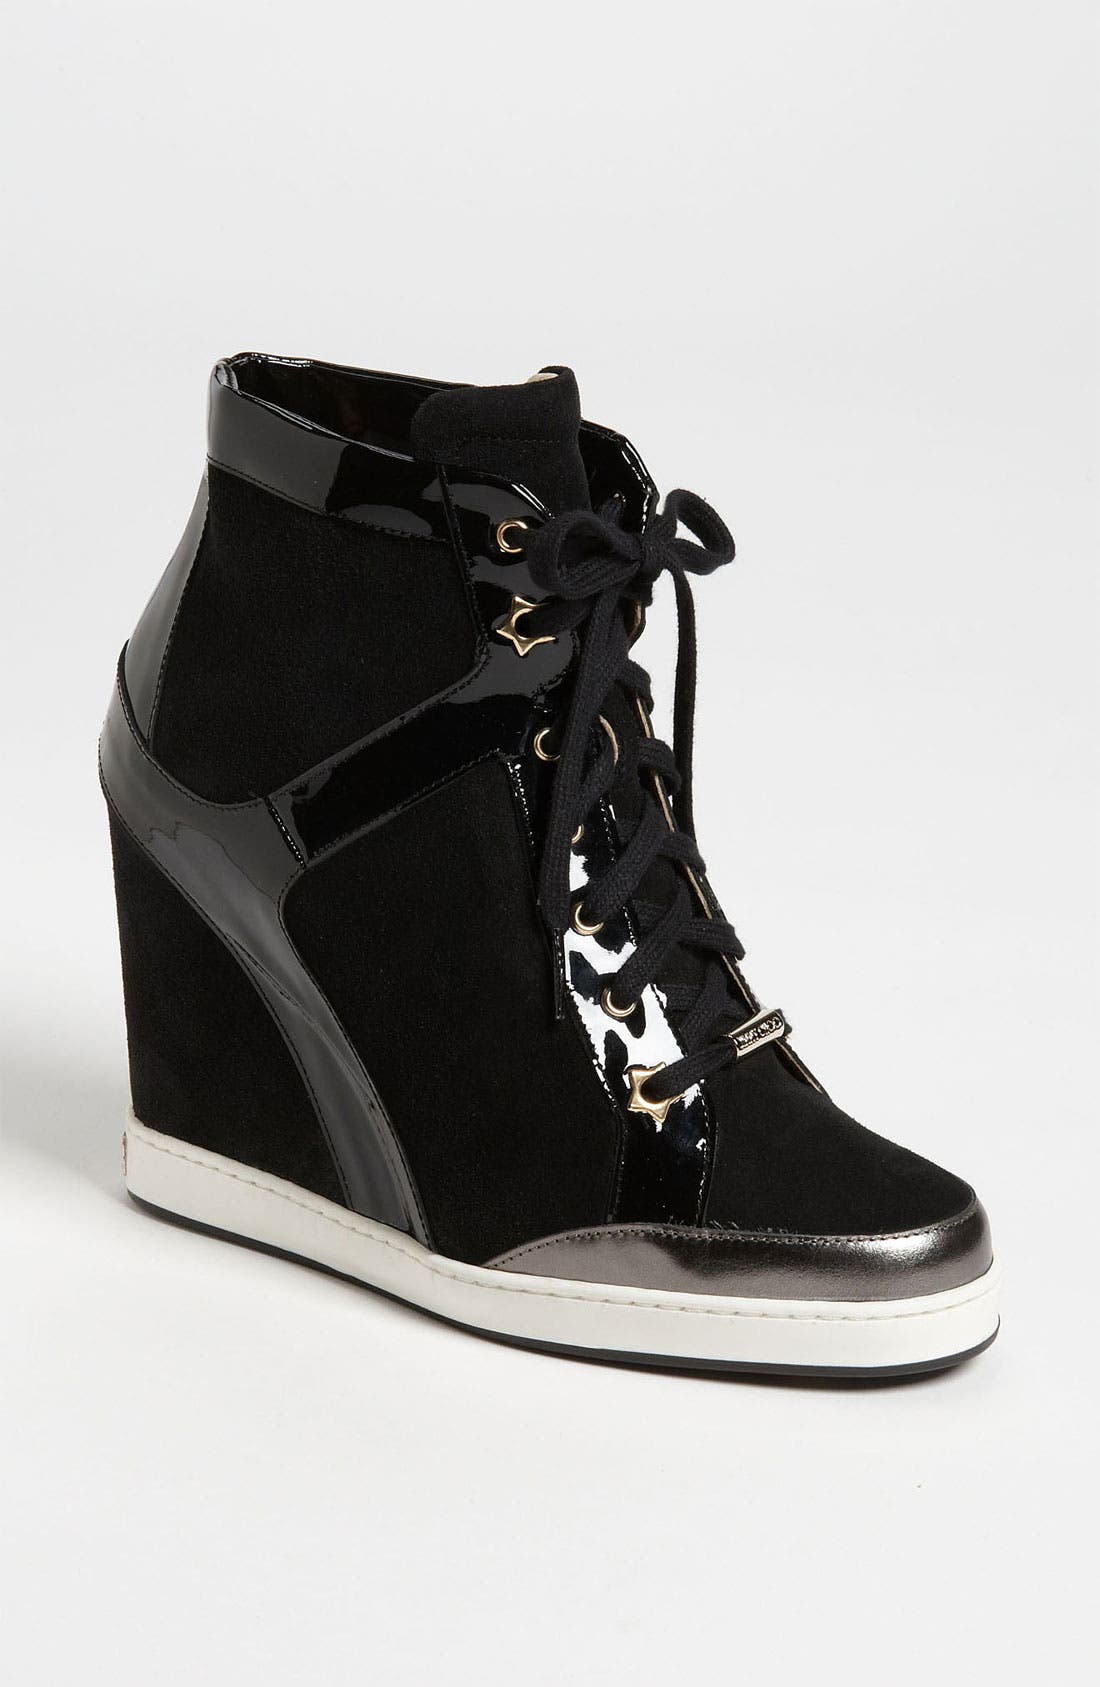 JIMMY CHOO, 'Panama' Wedge Sneaker, Main thumbnail 1, color, 001